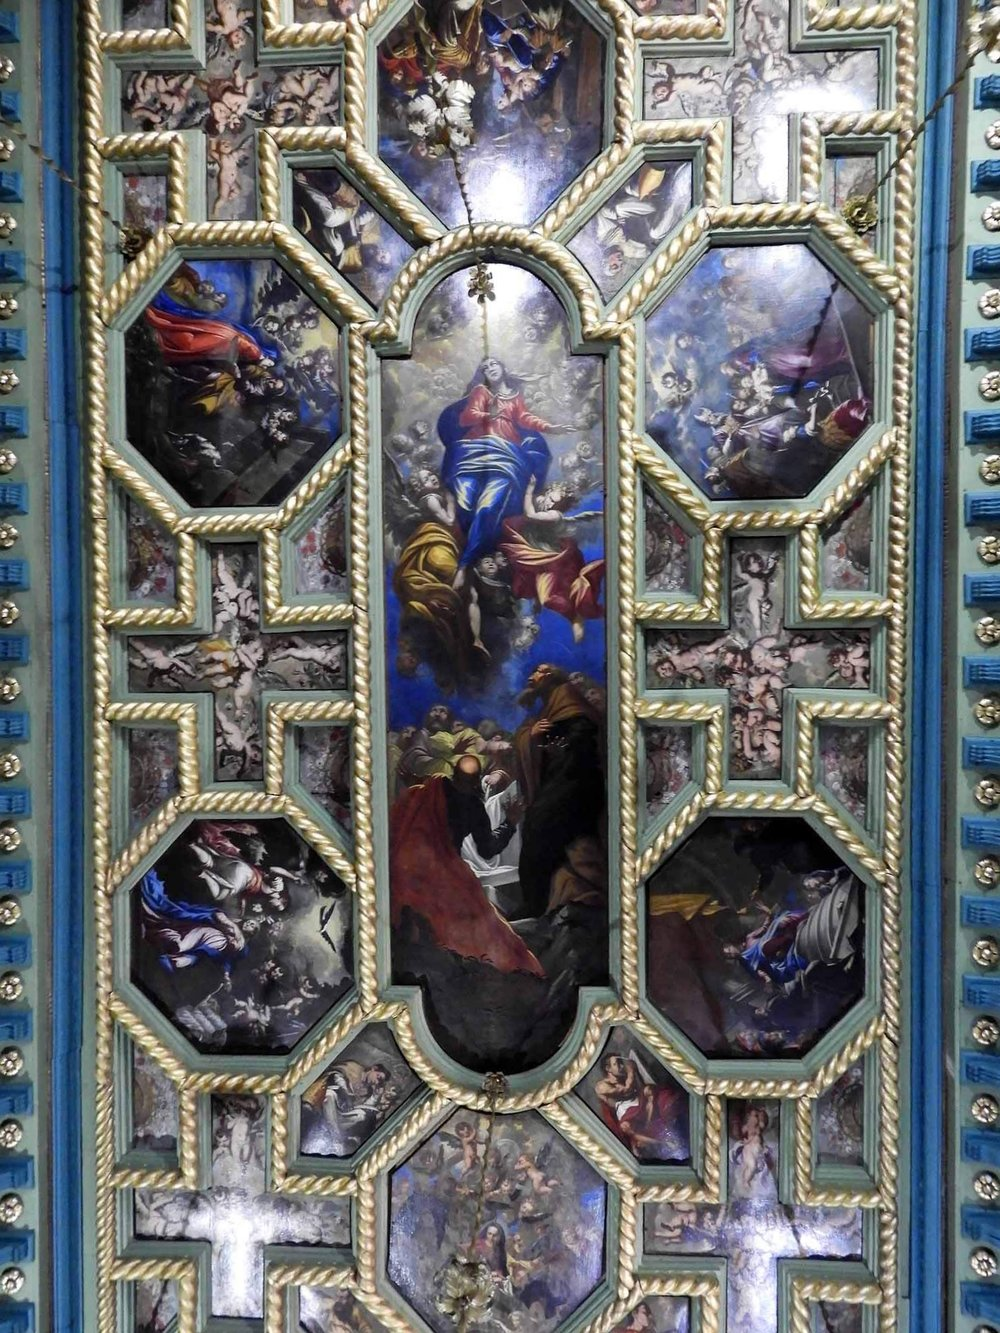 montenegro-island-our-lady-of-the-rocks-sveti-dordje-painting-ceiling.jpg